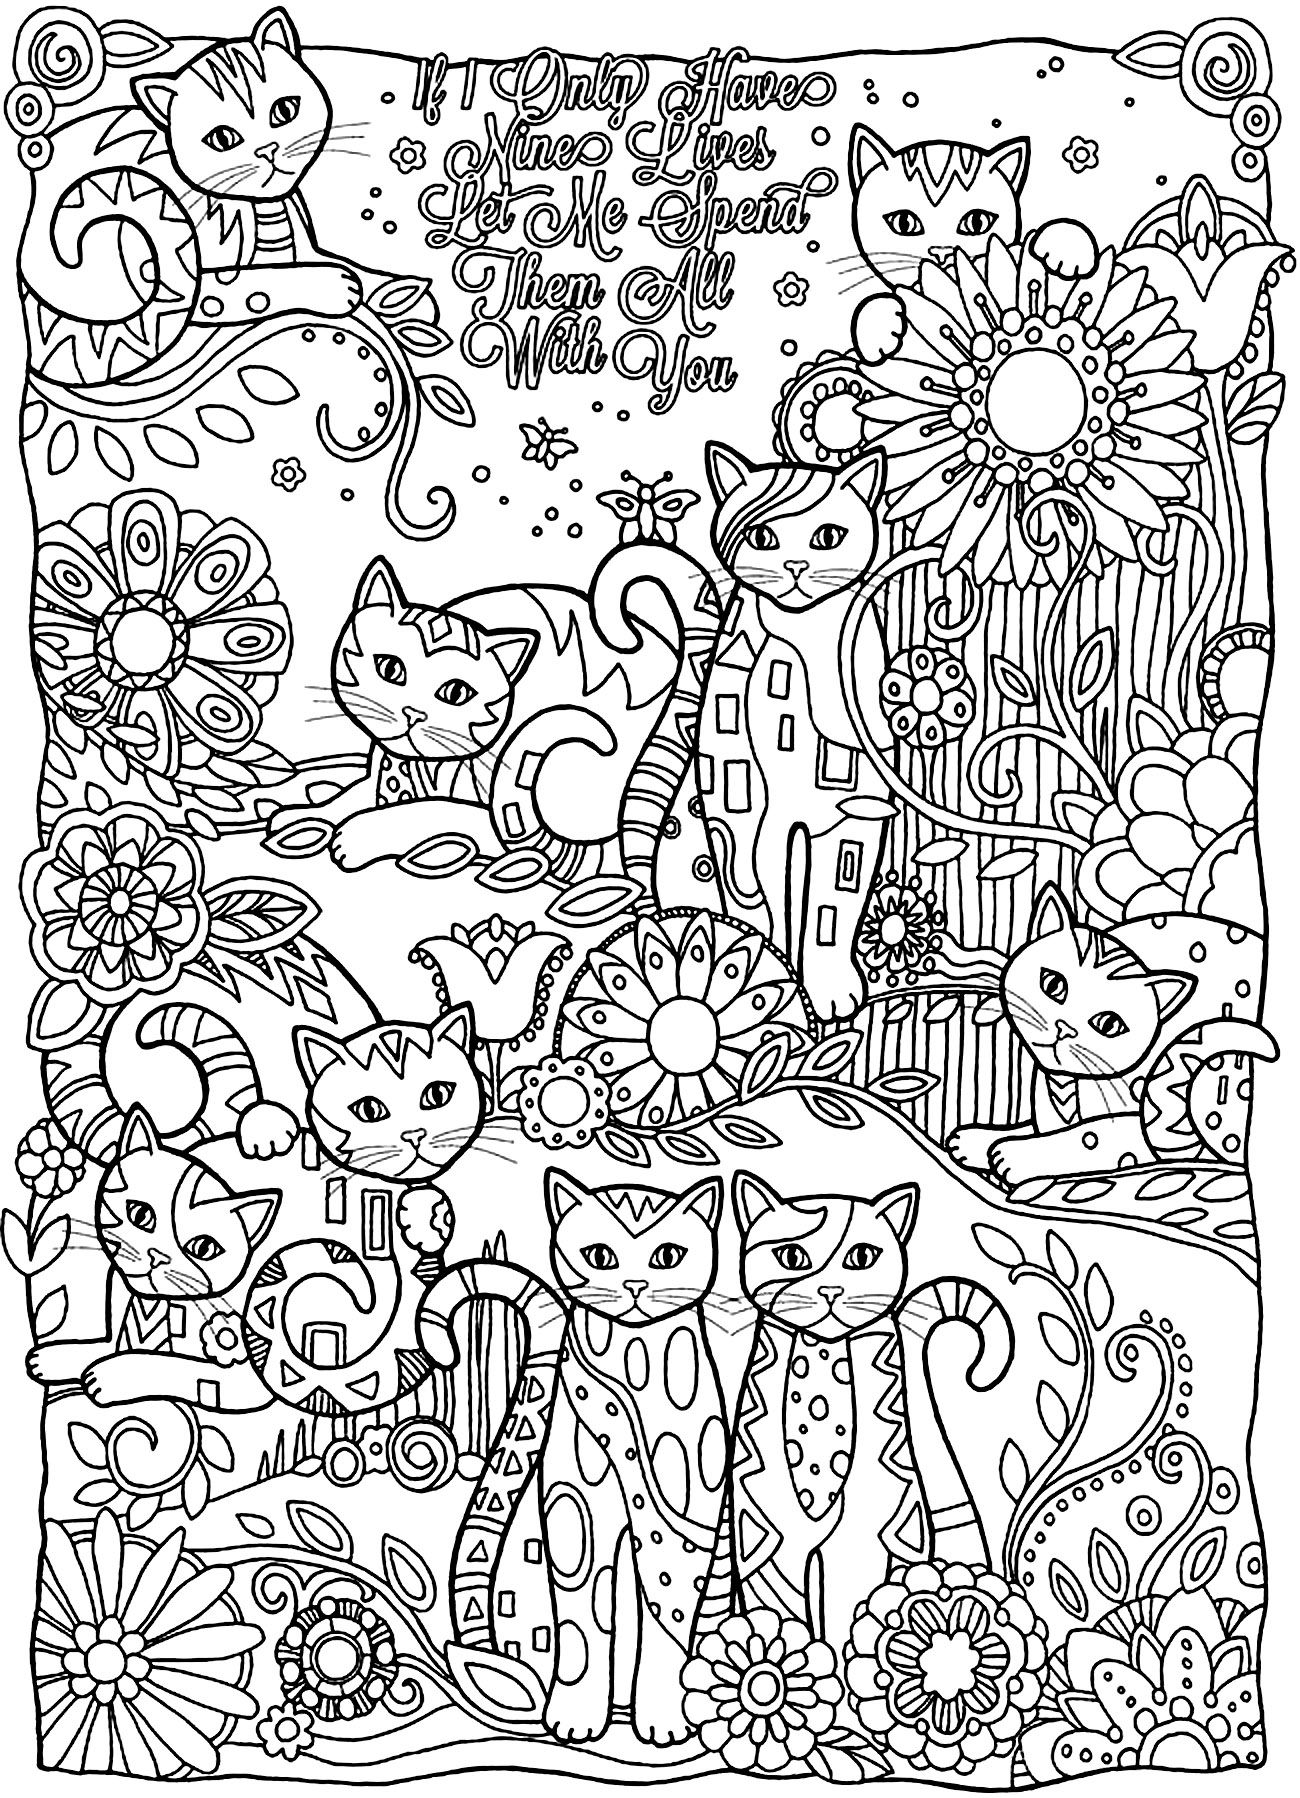 Cats Cutes Cats Coloring Pages For Adults Just Color